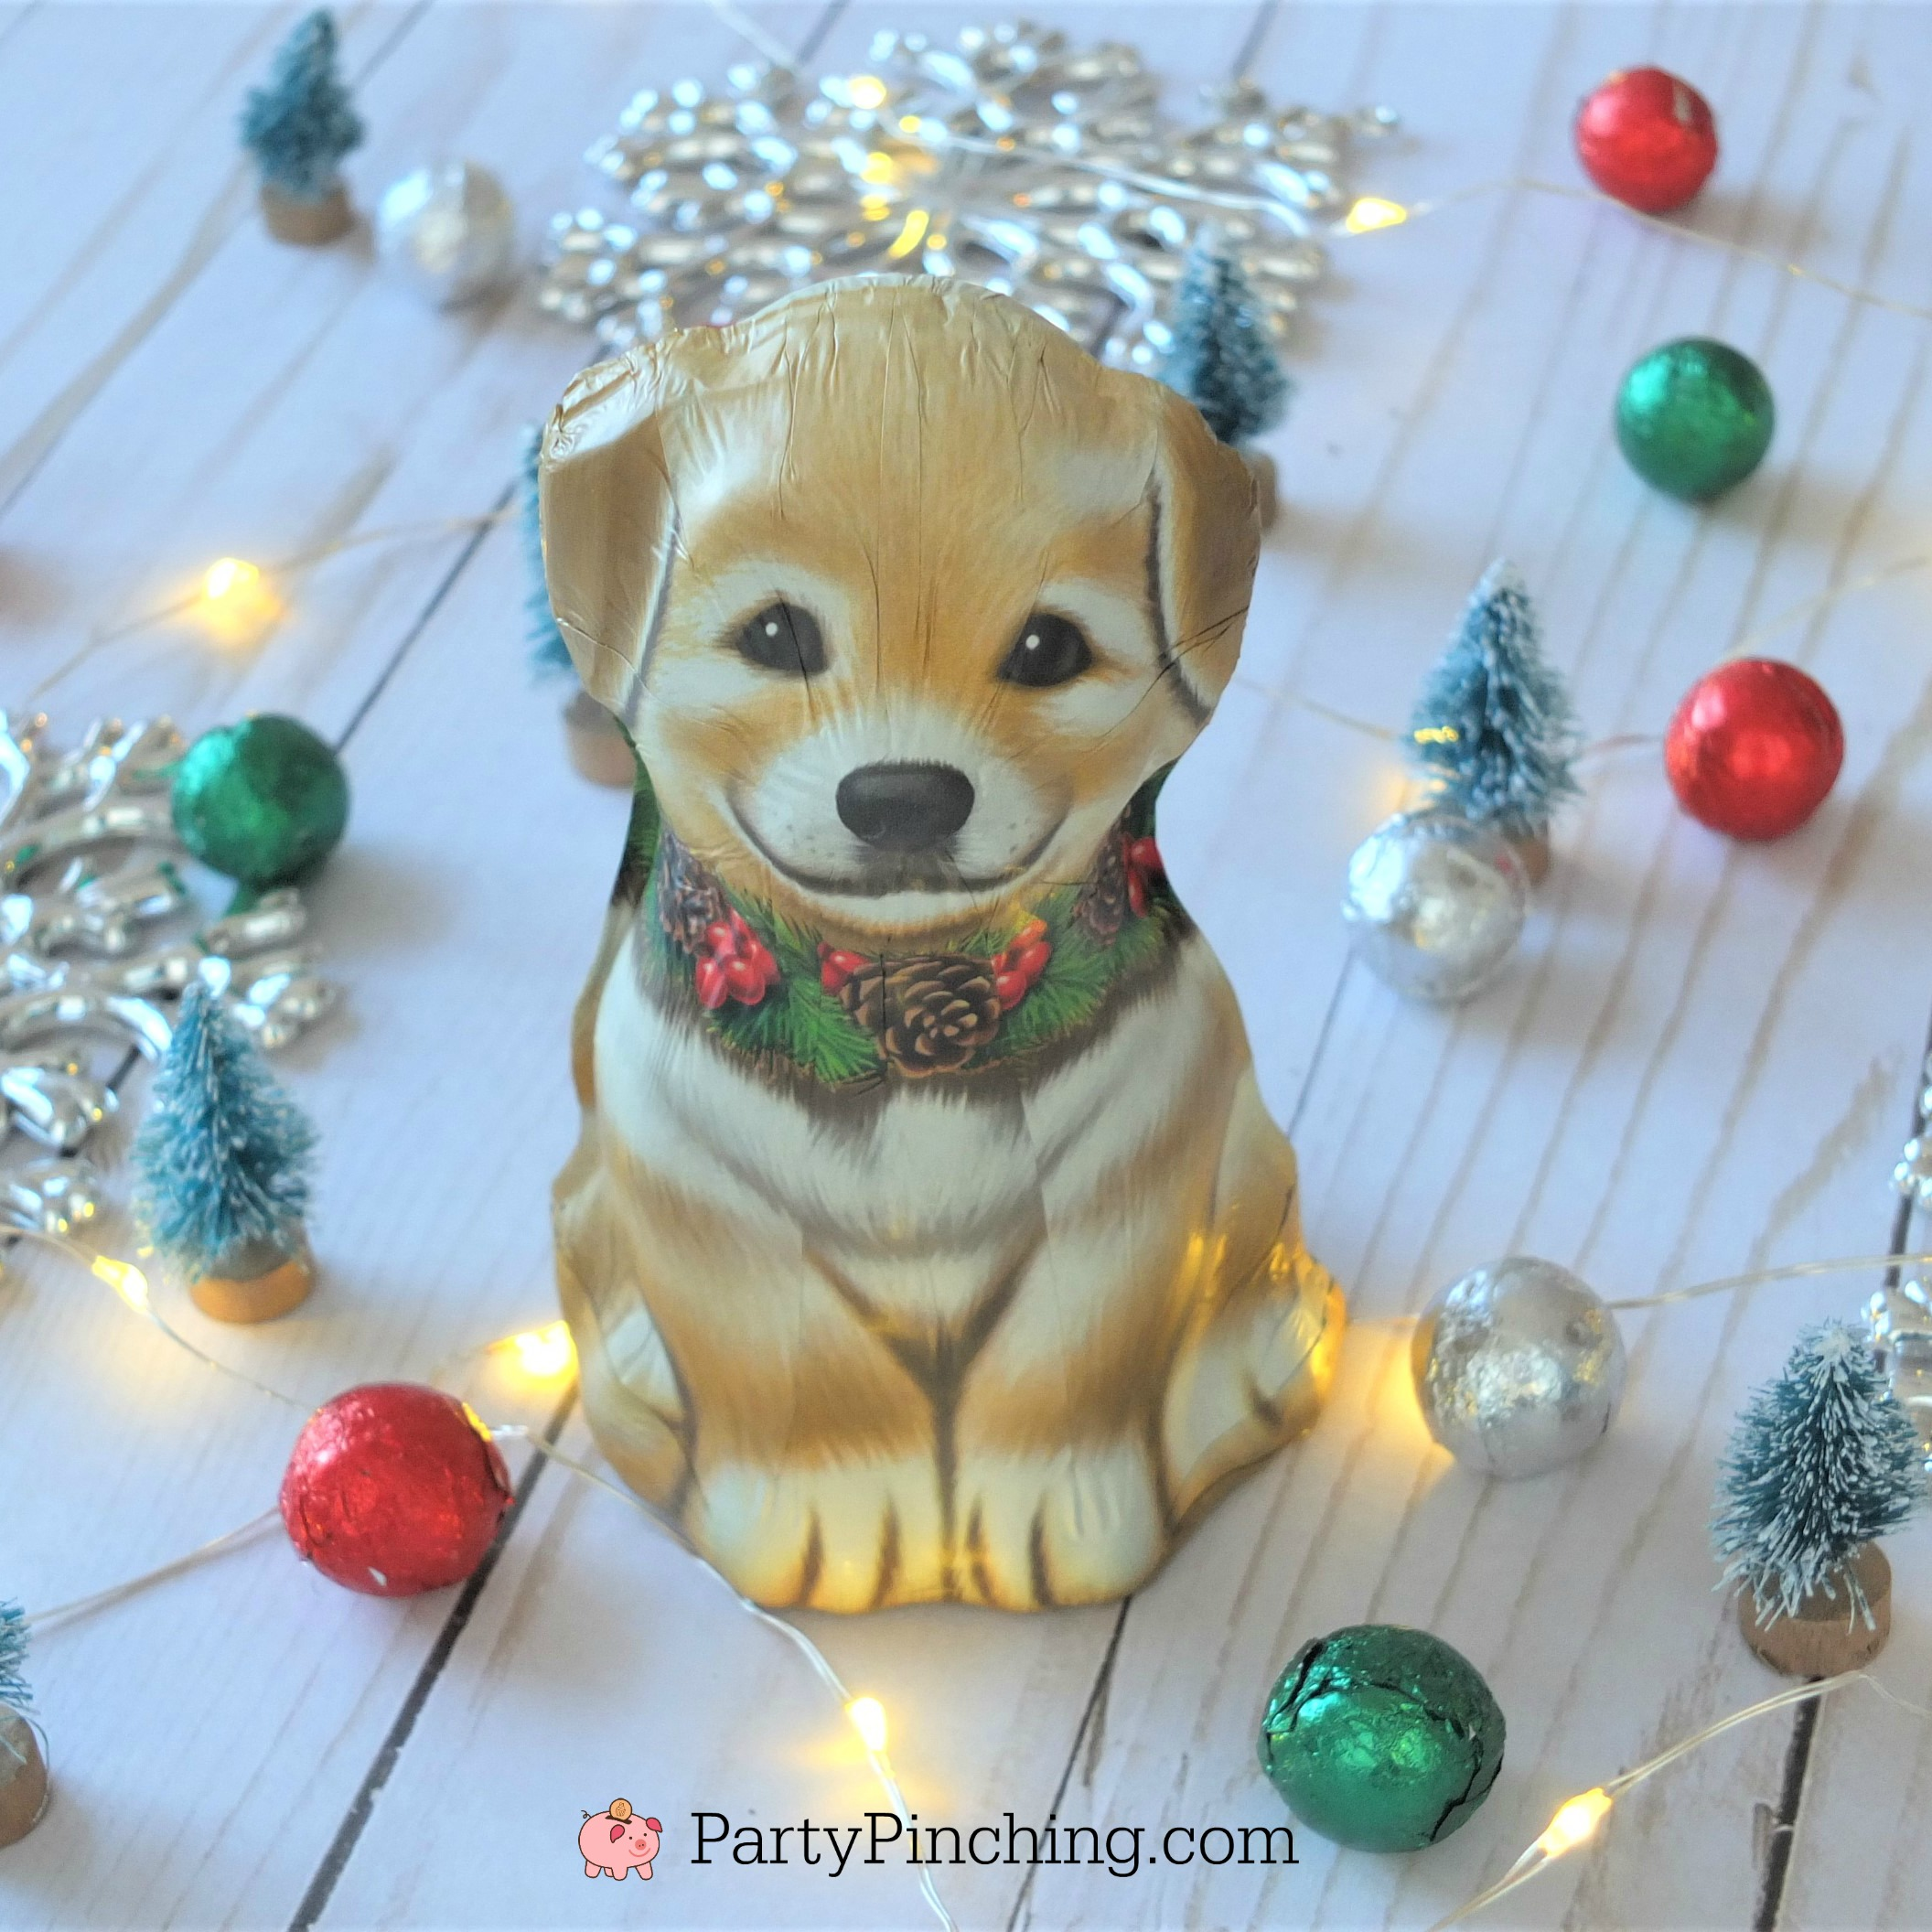 cute chocolate puppy stocking stuffer for Christmas, kids stocking ideas